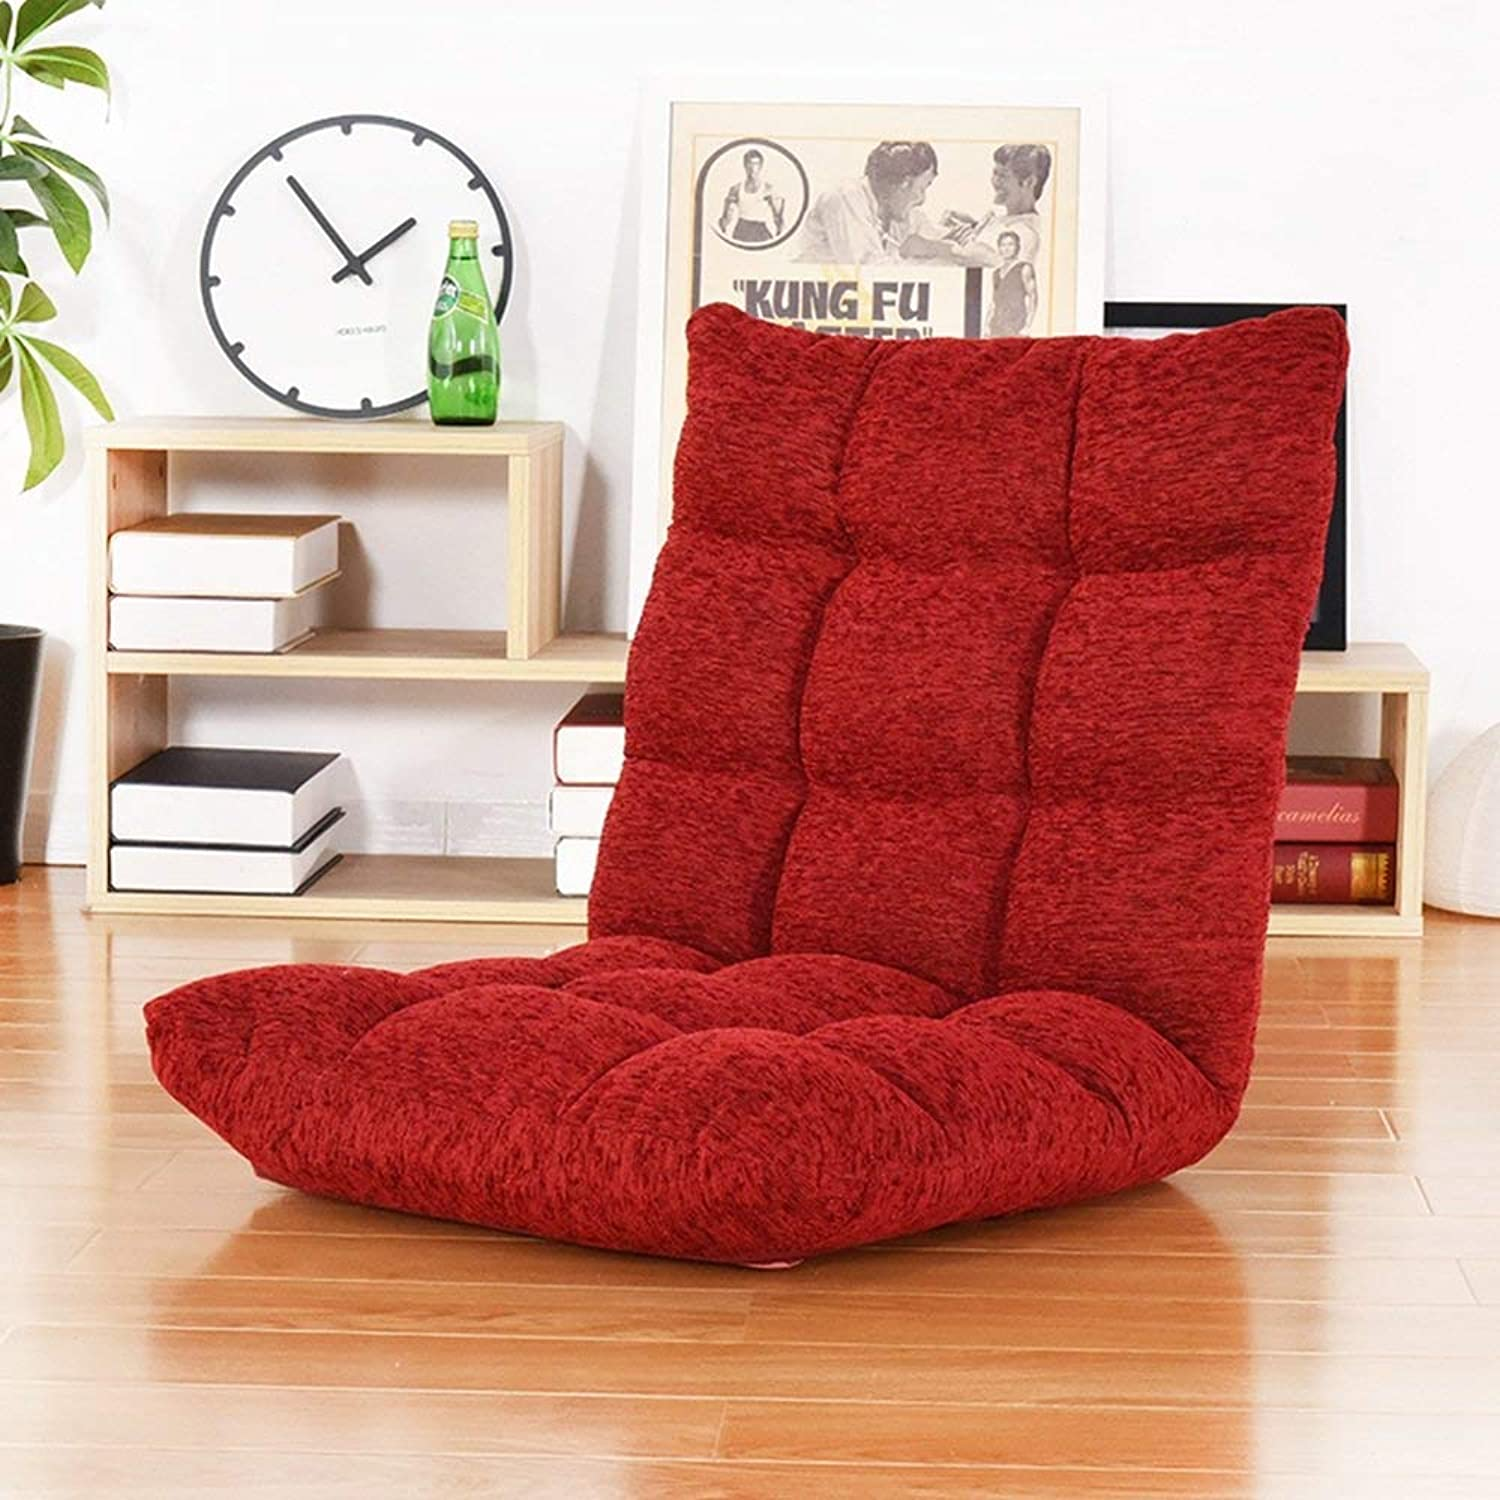 Lazy Floor Sofa, Lazy Sofa Single Bed Chair Floor Folding Sofa Bed (color   Red)